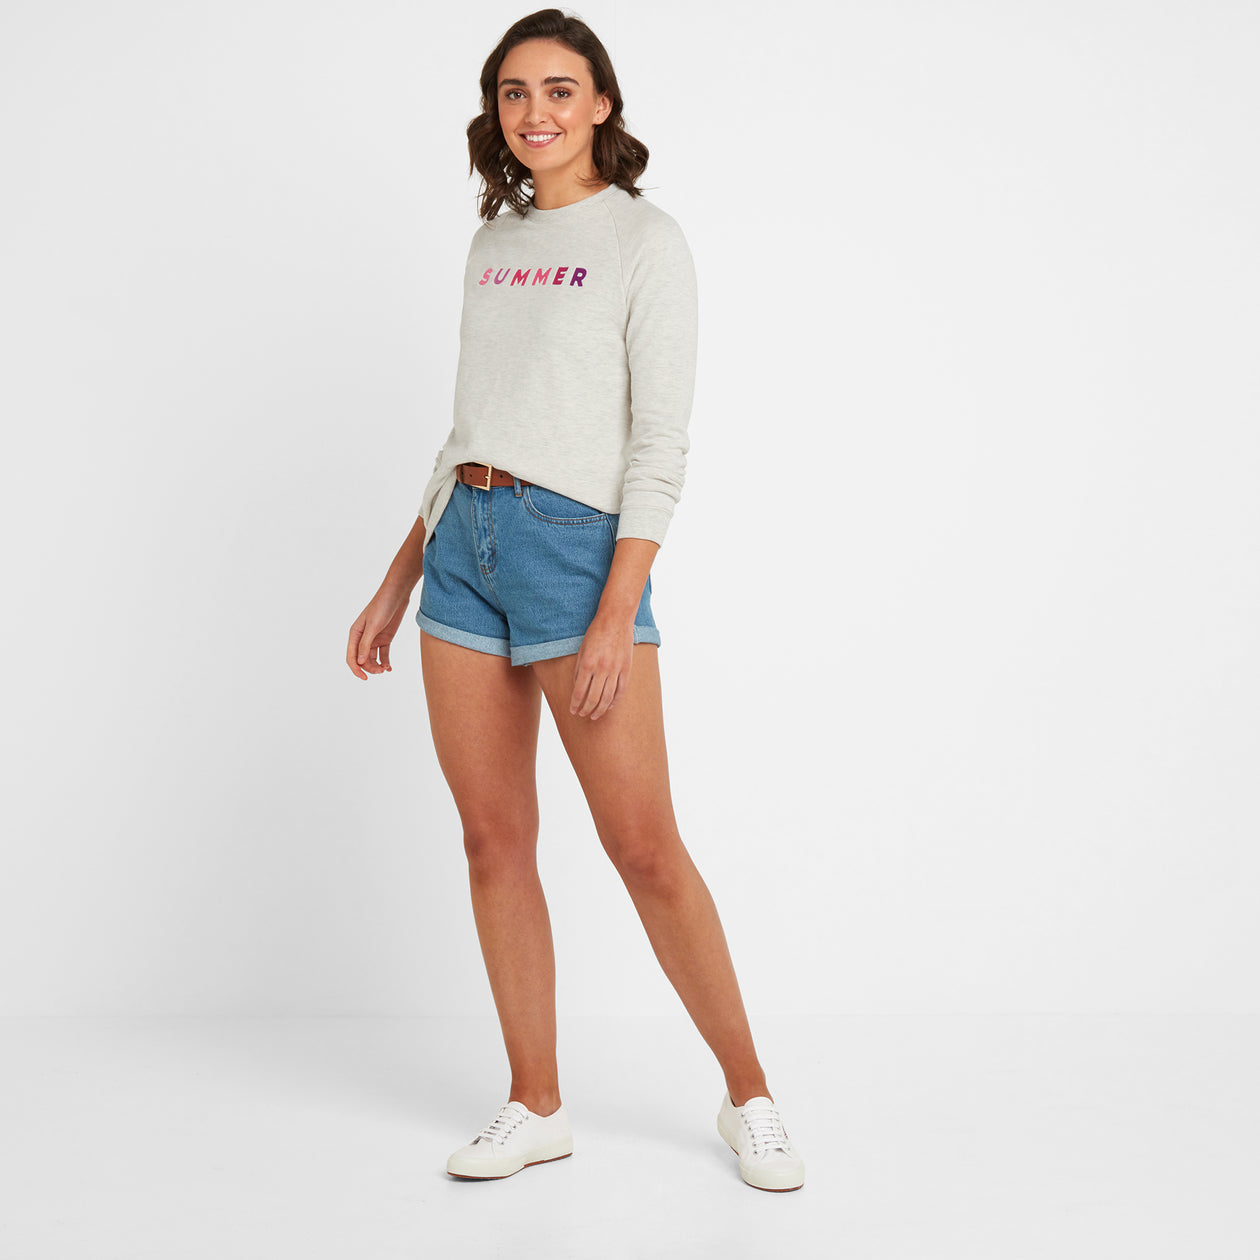 Varley Womens Crew Sweat - Oatmeal Marl image 4